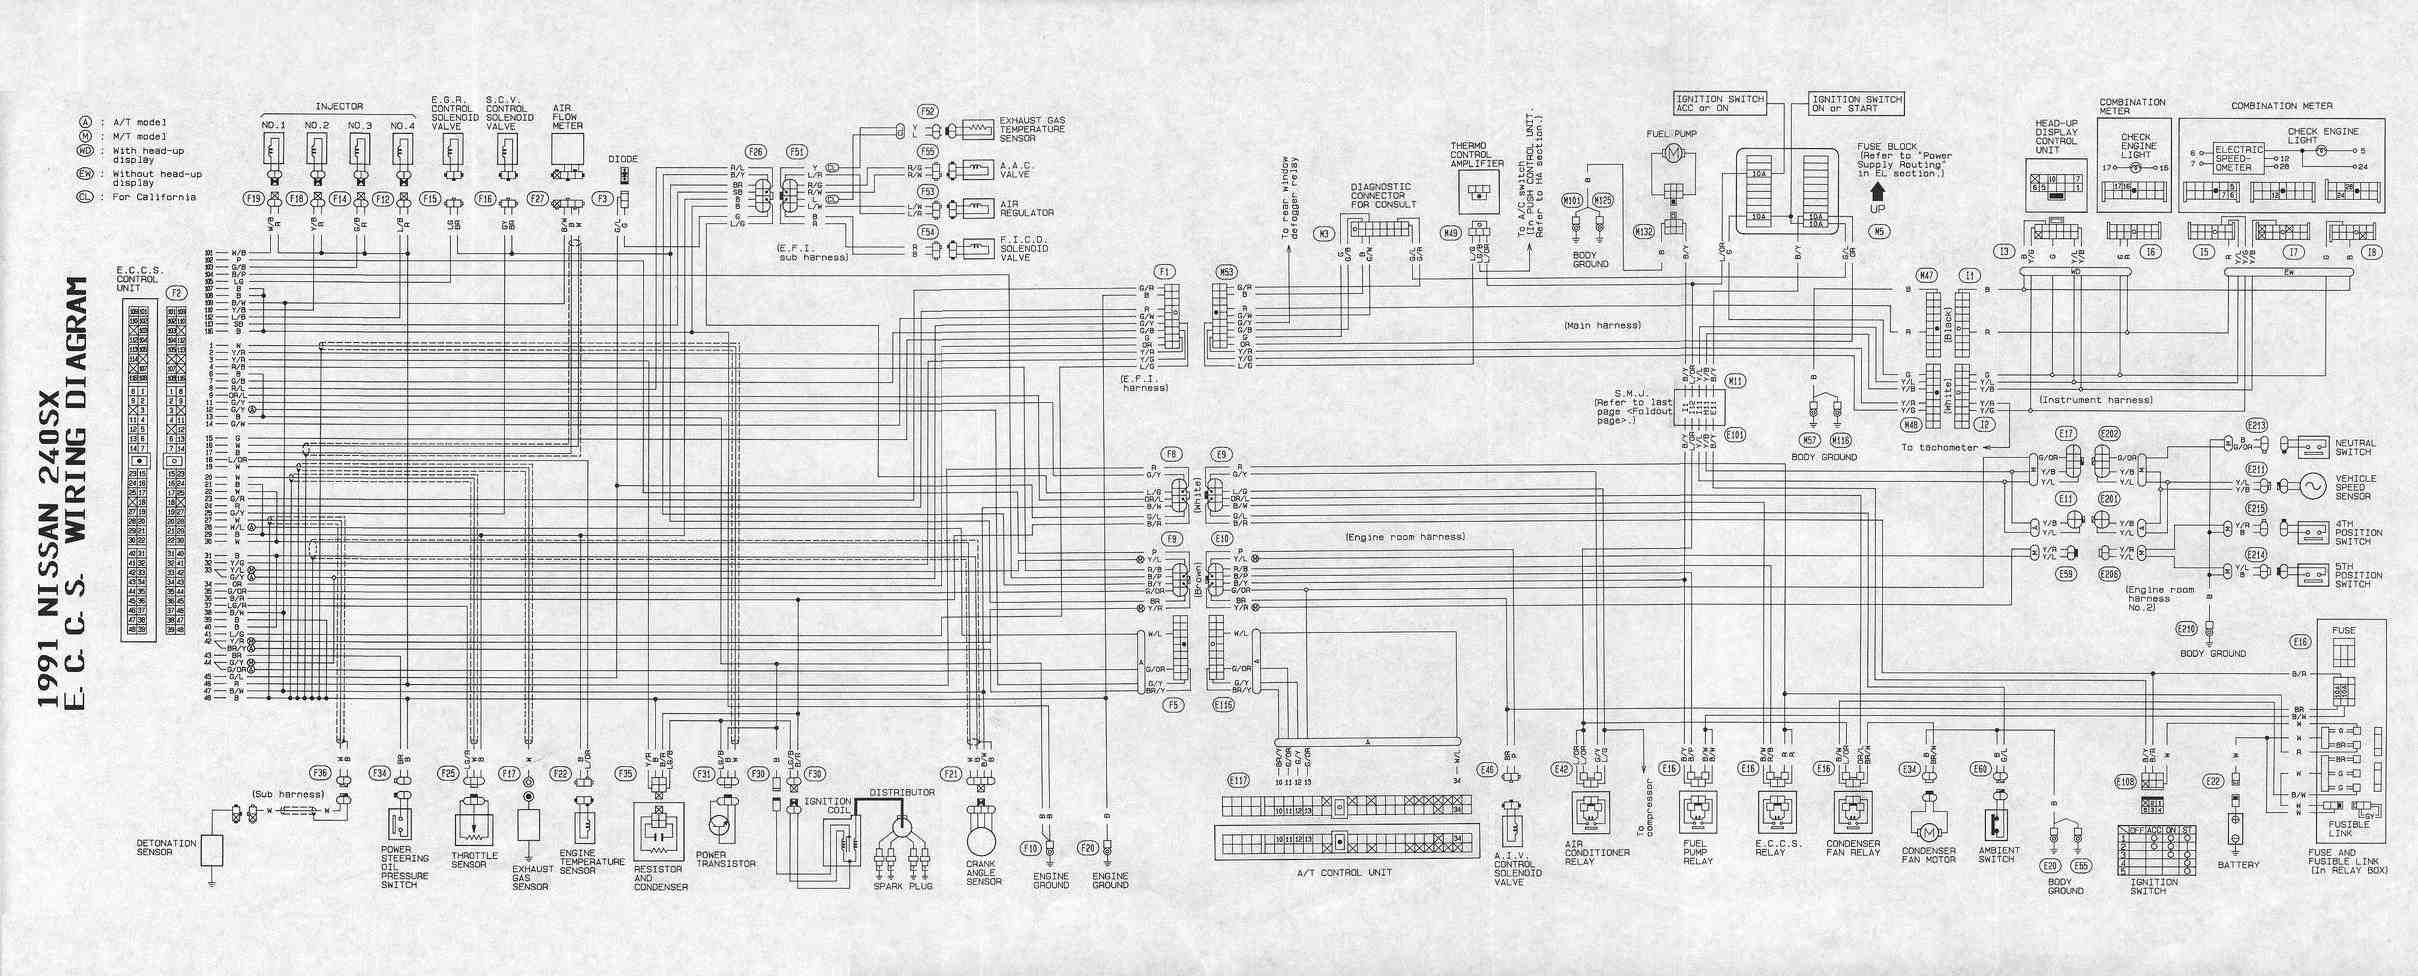 medium resolution of captivating nissan micra k12 wiring diagram pdf photos best image nissan micra 2003 fuse box diagram